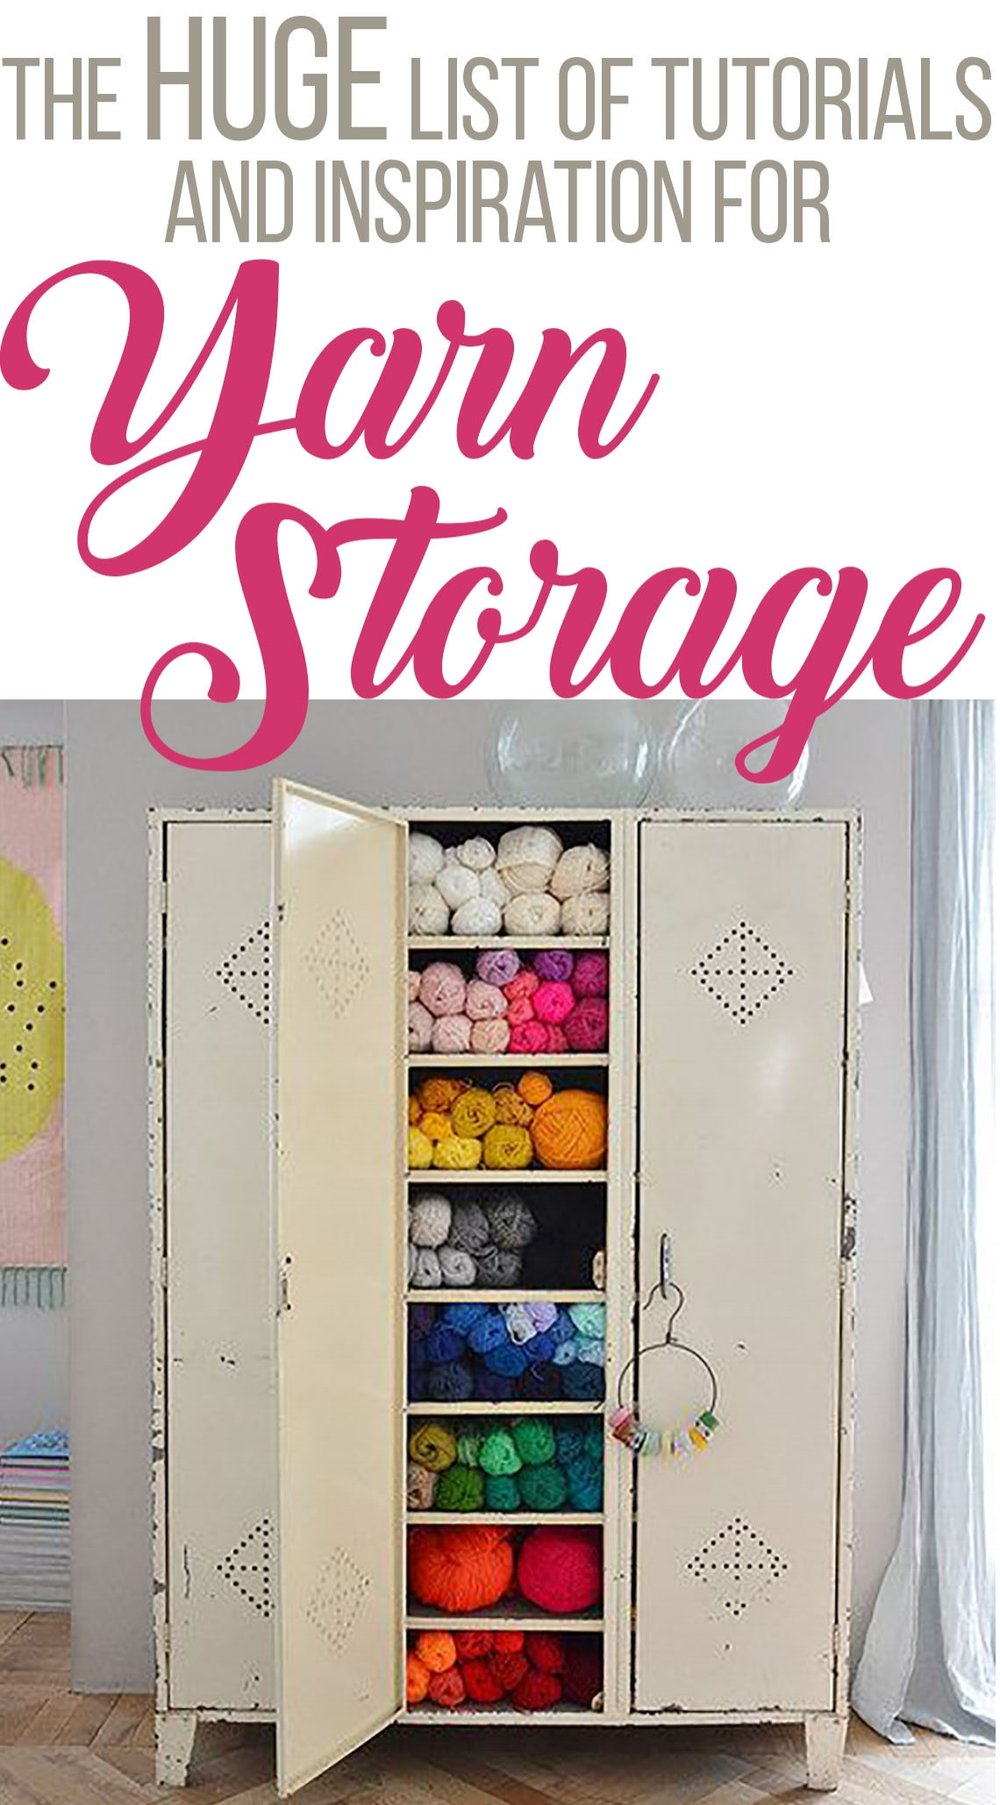 Click Here for ideas on how to store your lovely yarn